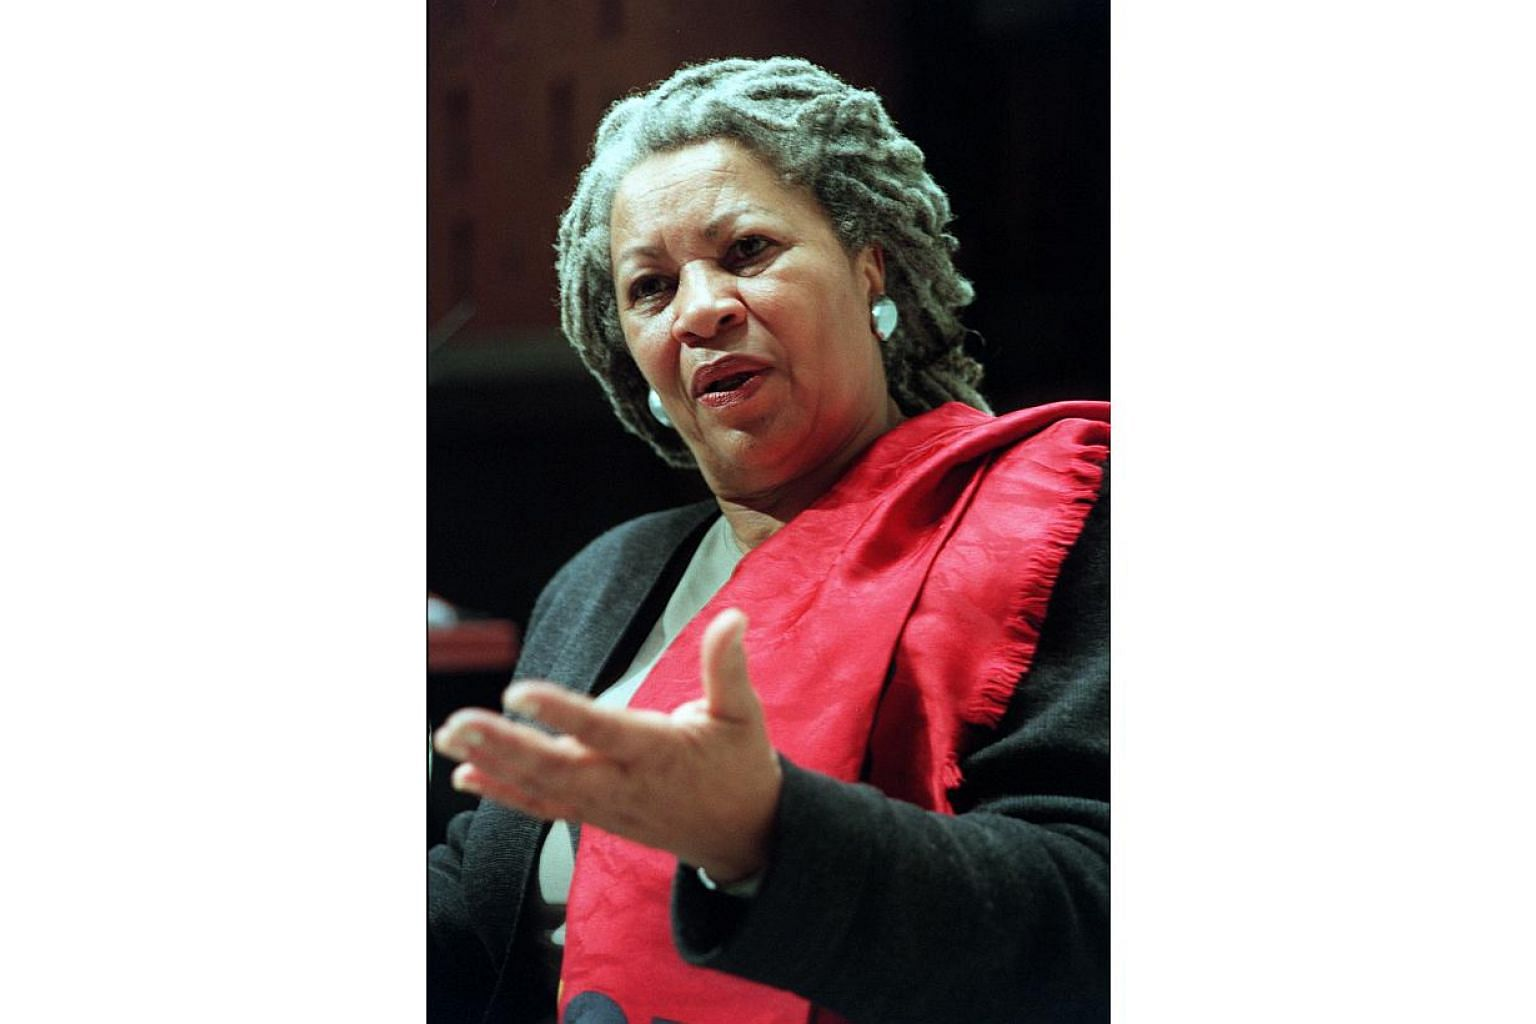 """Quiet as it's kept,"" begins Toni Morrison's first novel, The Bluest Eye, appropriate for a book published in 1970 about issues difficult to raise, such as the aftereffects of sexual assault. -- ST PHOTO: SIM CHI YIN"